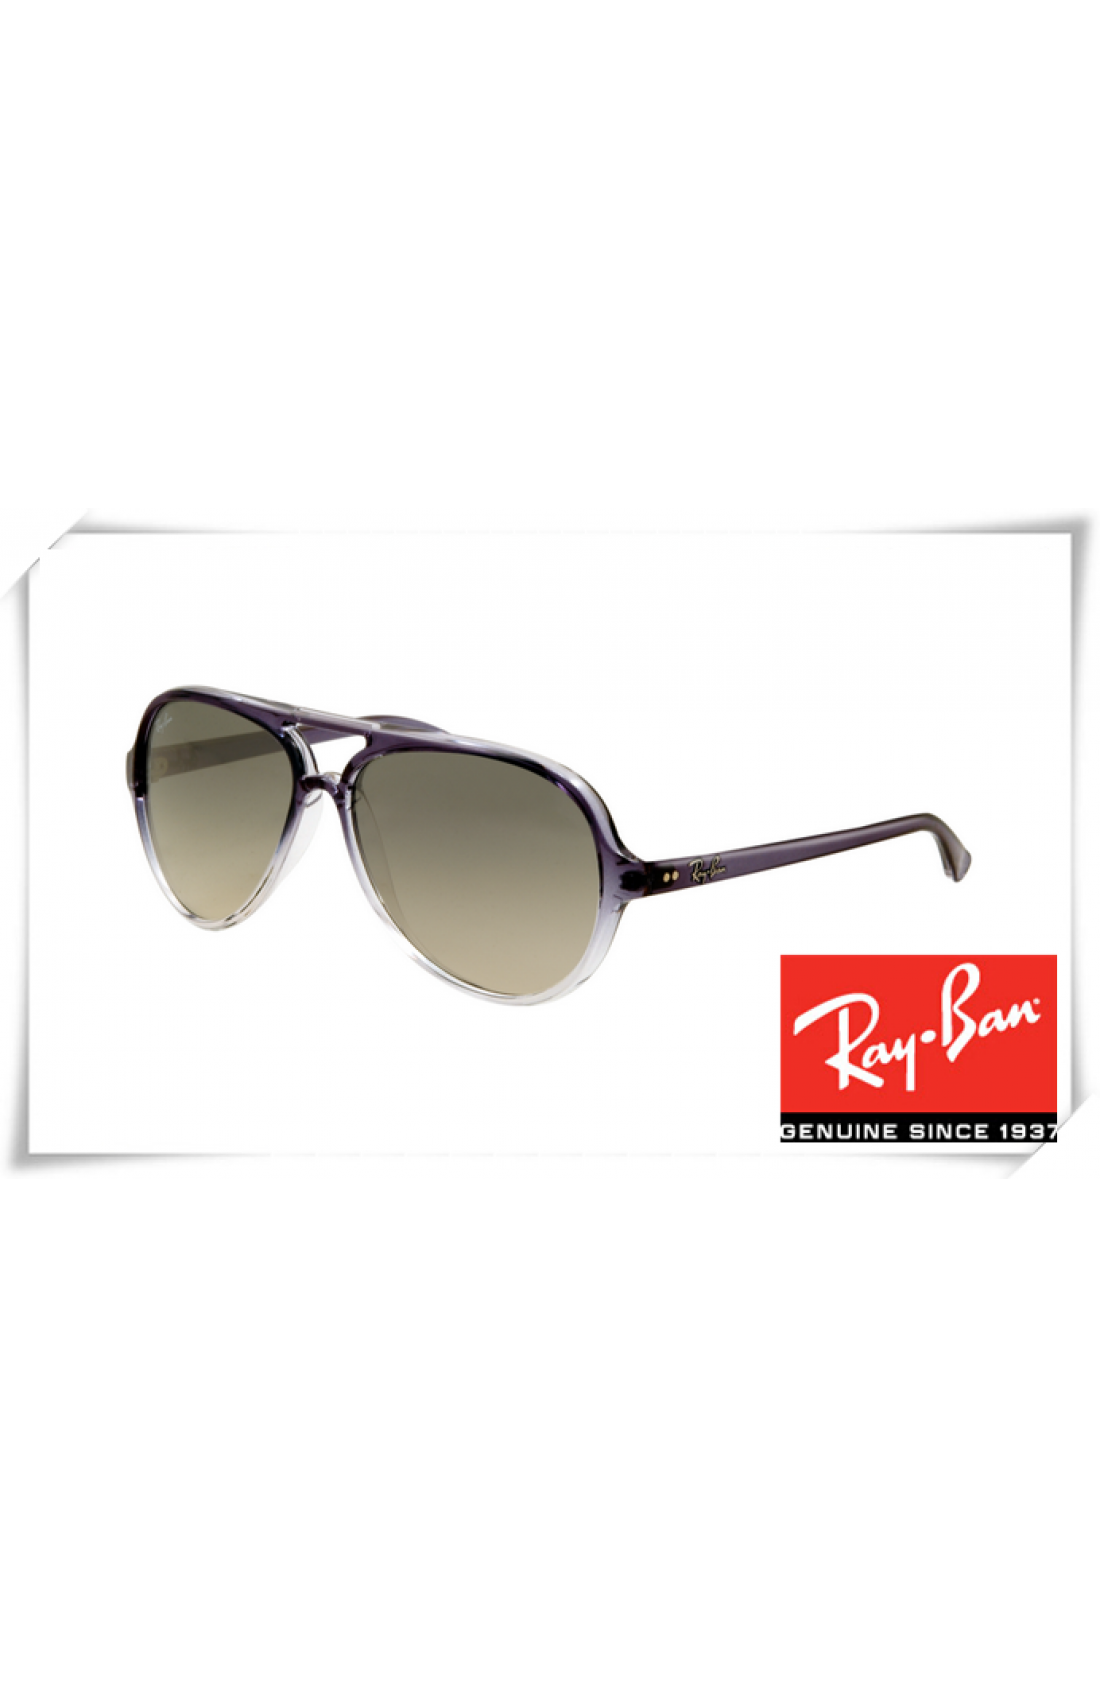 a050e7386d Replica Ray Ban RB4125 Cats Sunglasses Crystal Purple Frame Light ...